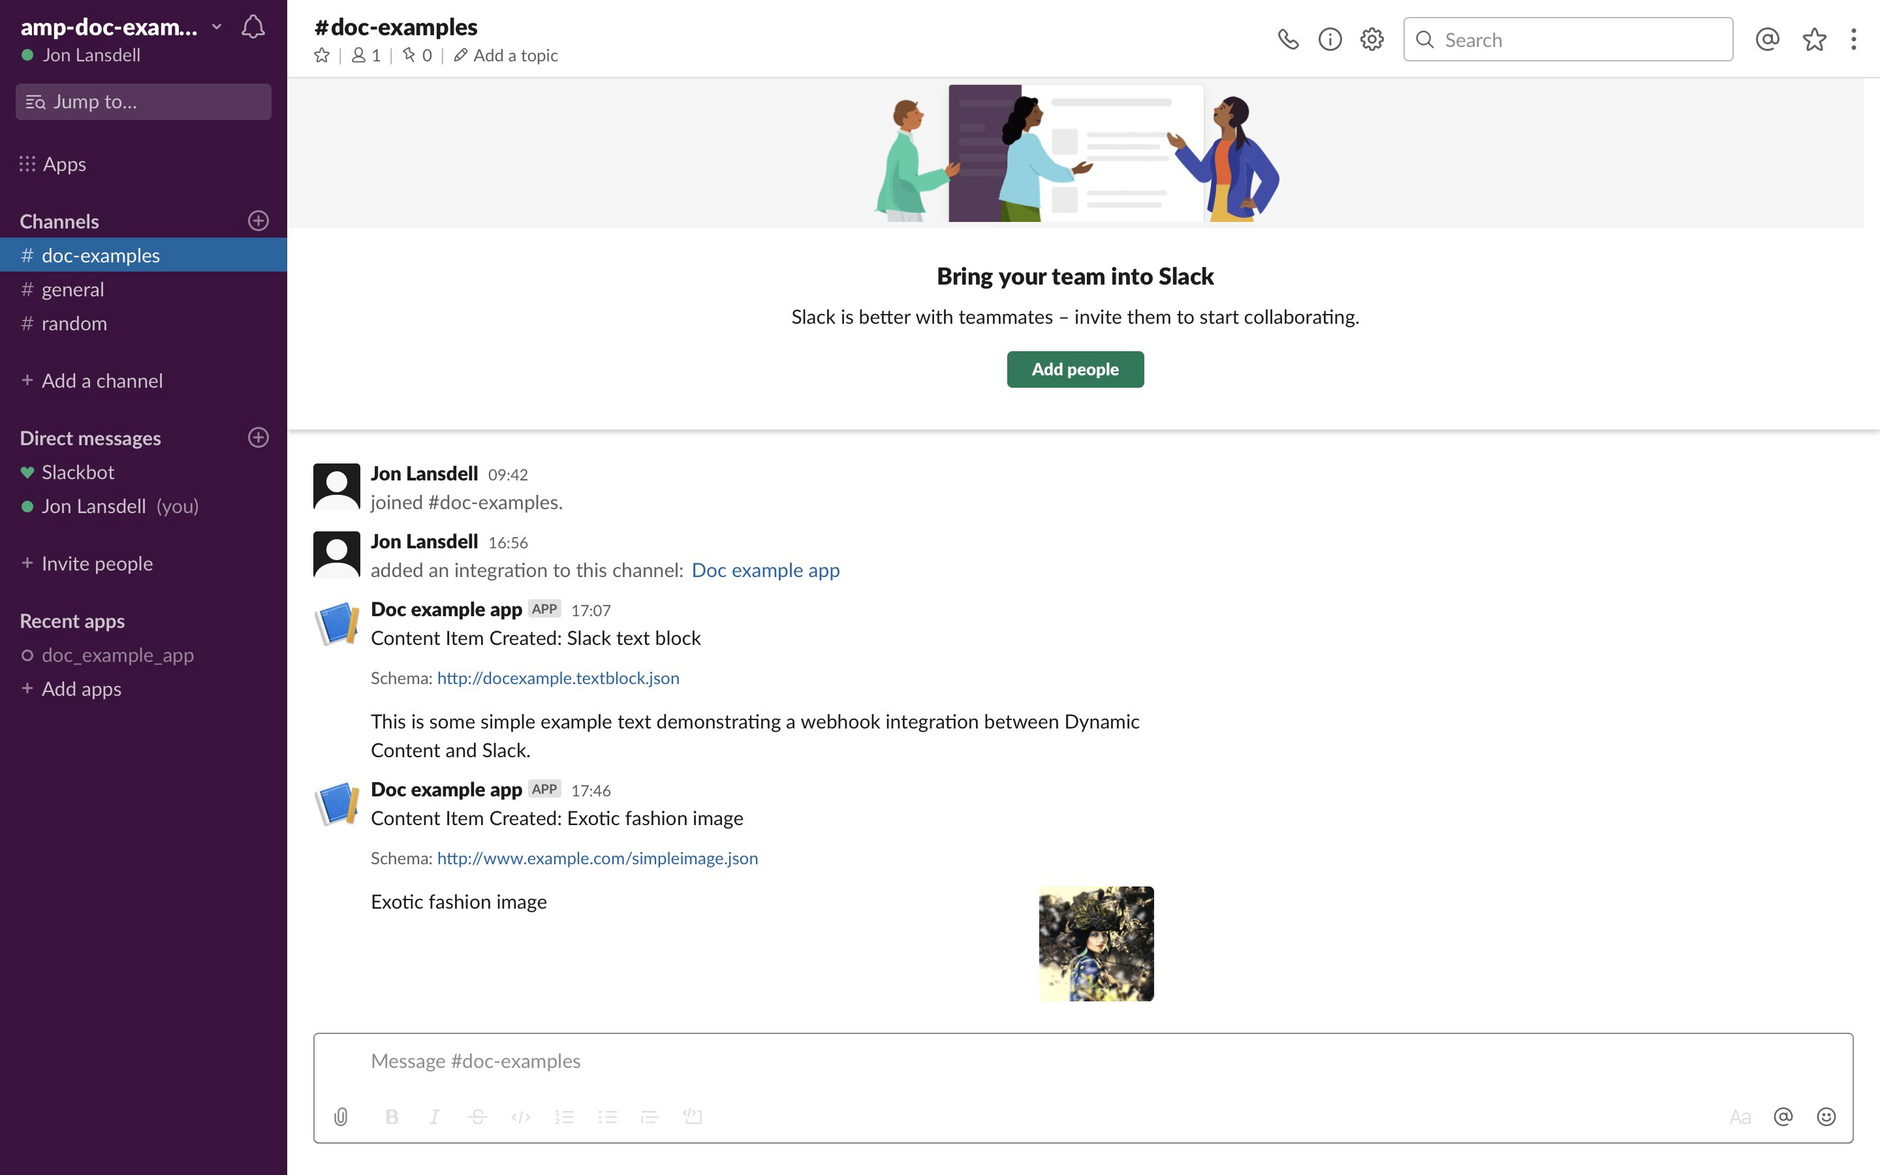 The image is shown in a new Slack message